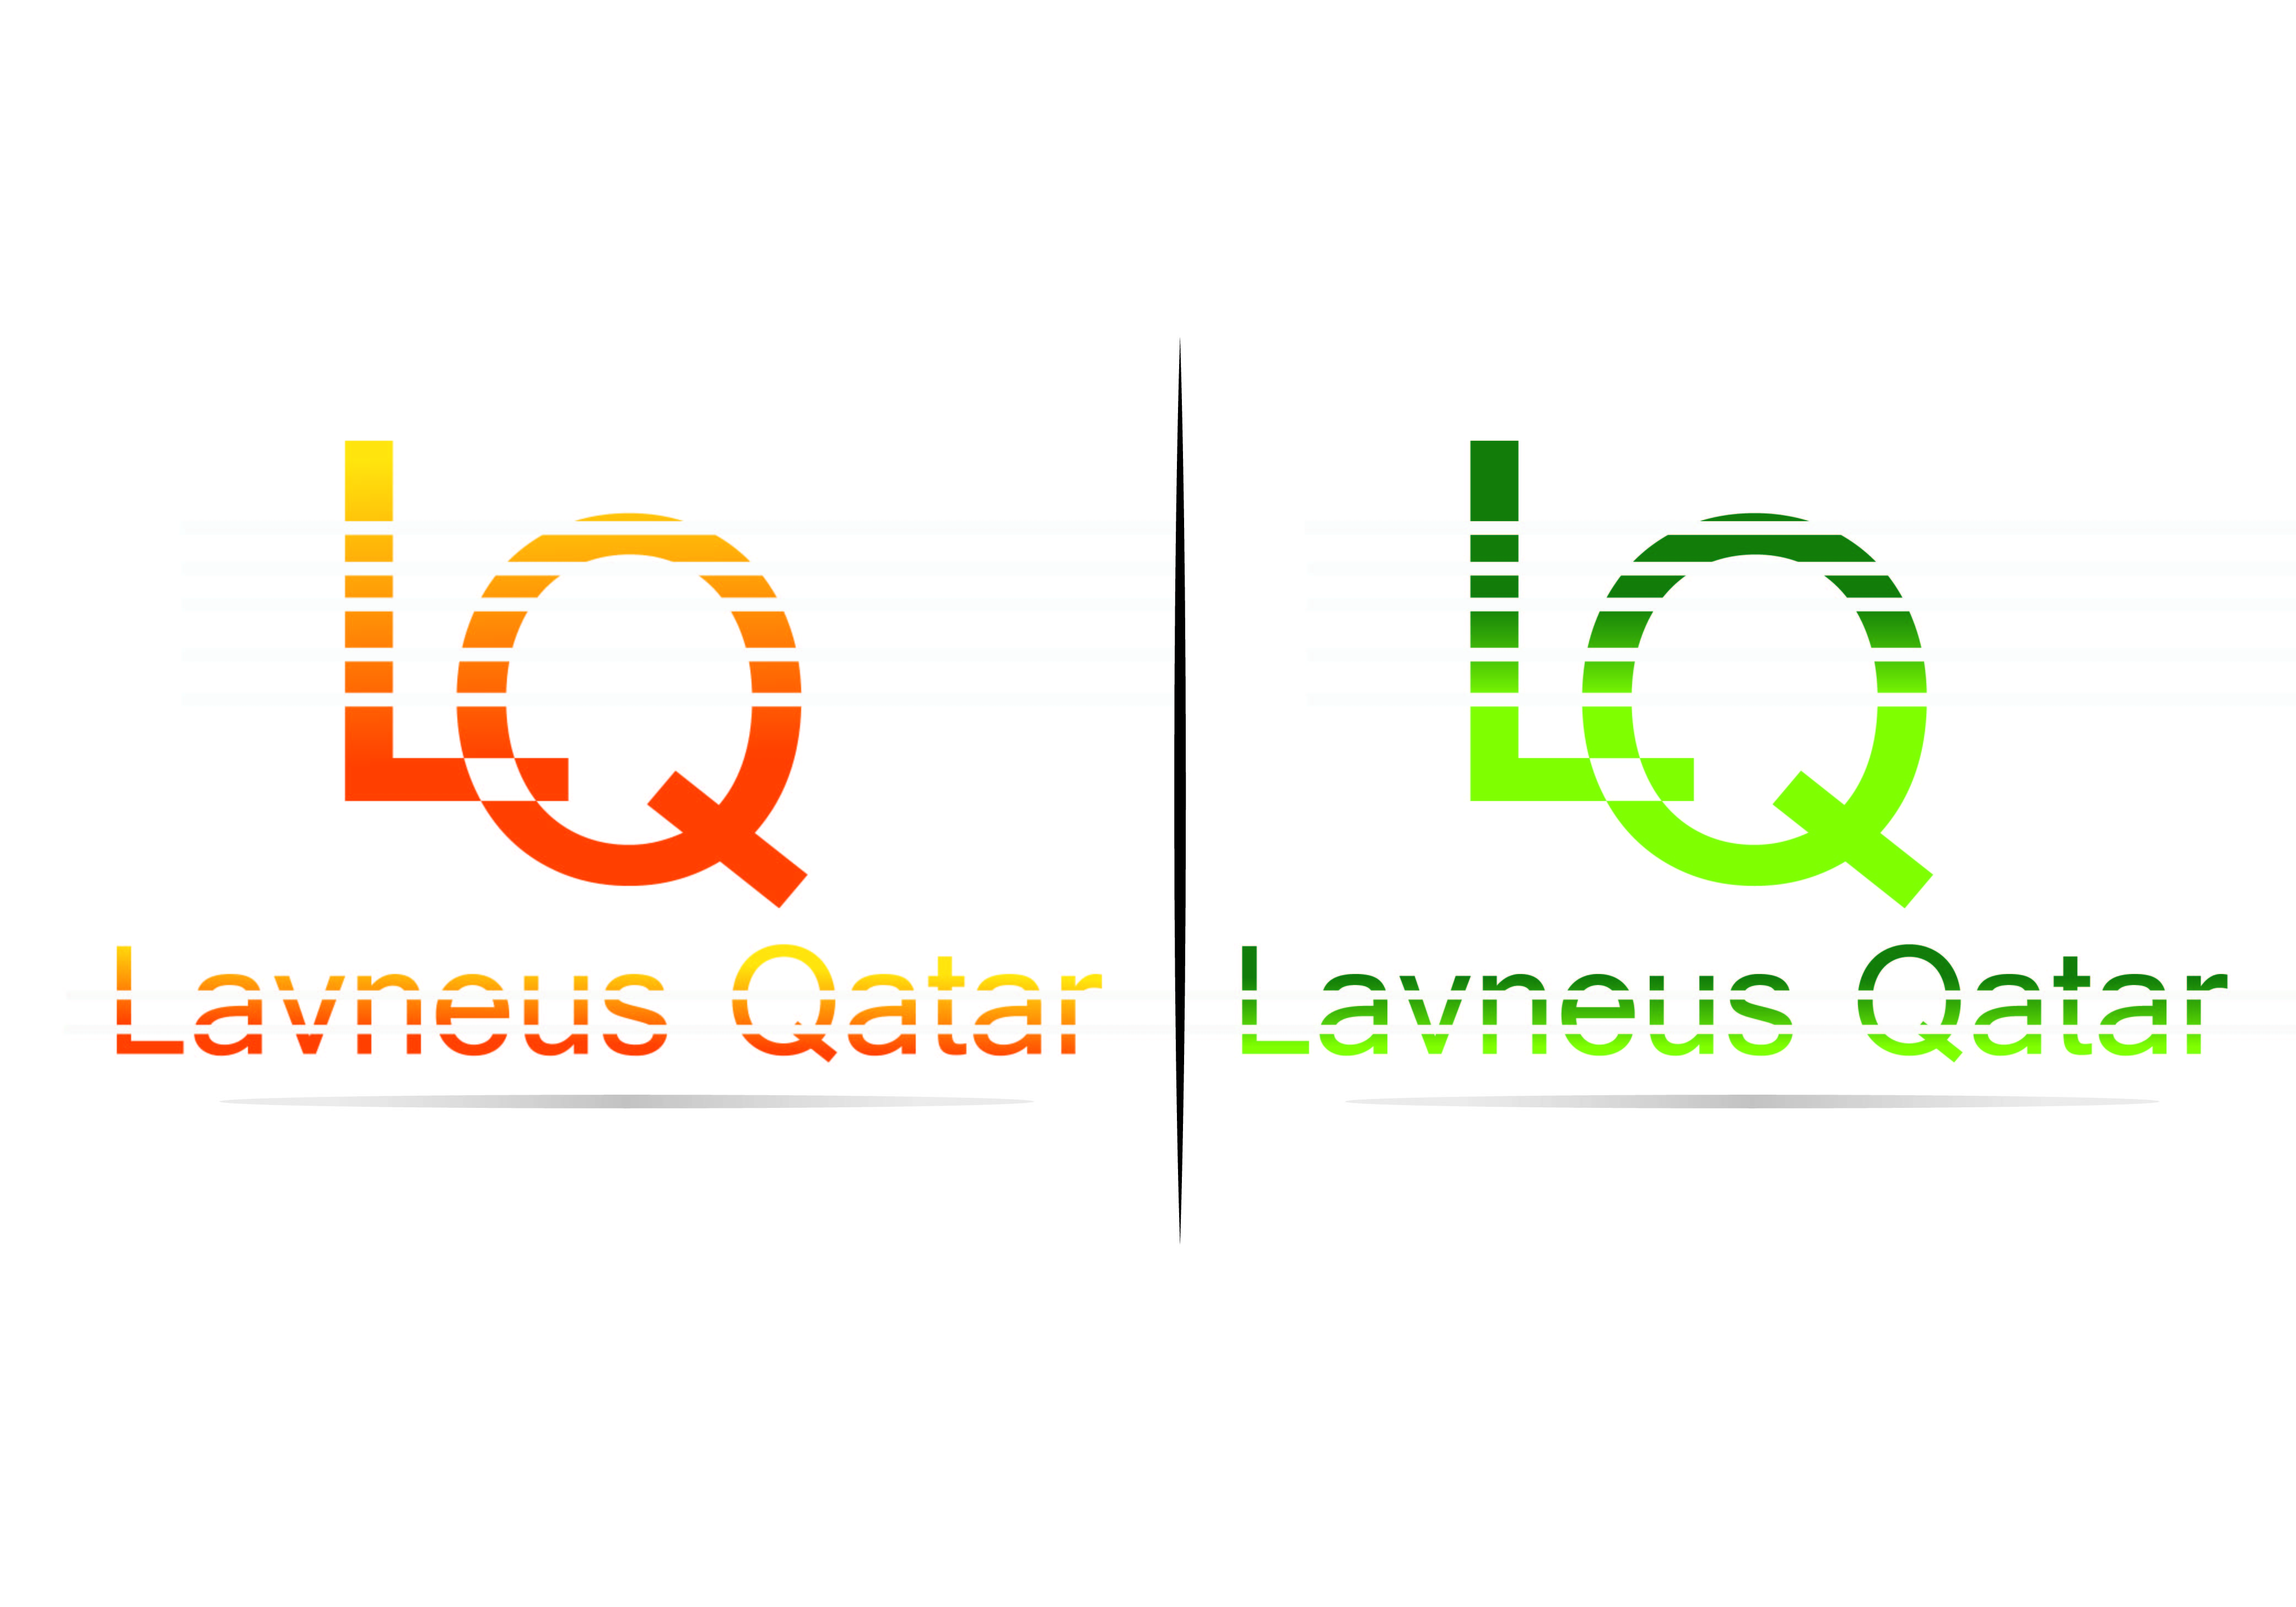 Logo Design by Bilal Baloch - Entry No. 70 in the Logo Design Contest Imaginative Logo Design for lavneus qatar.